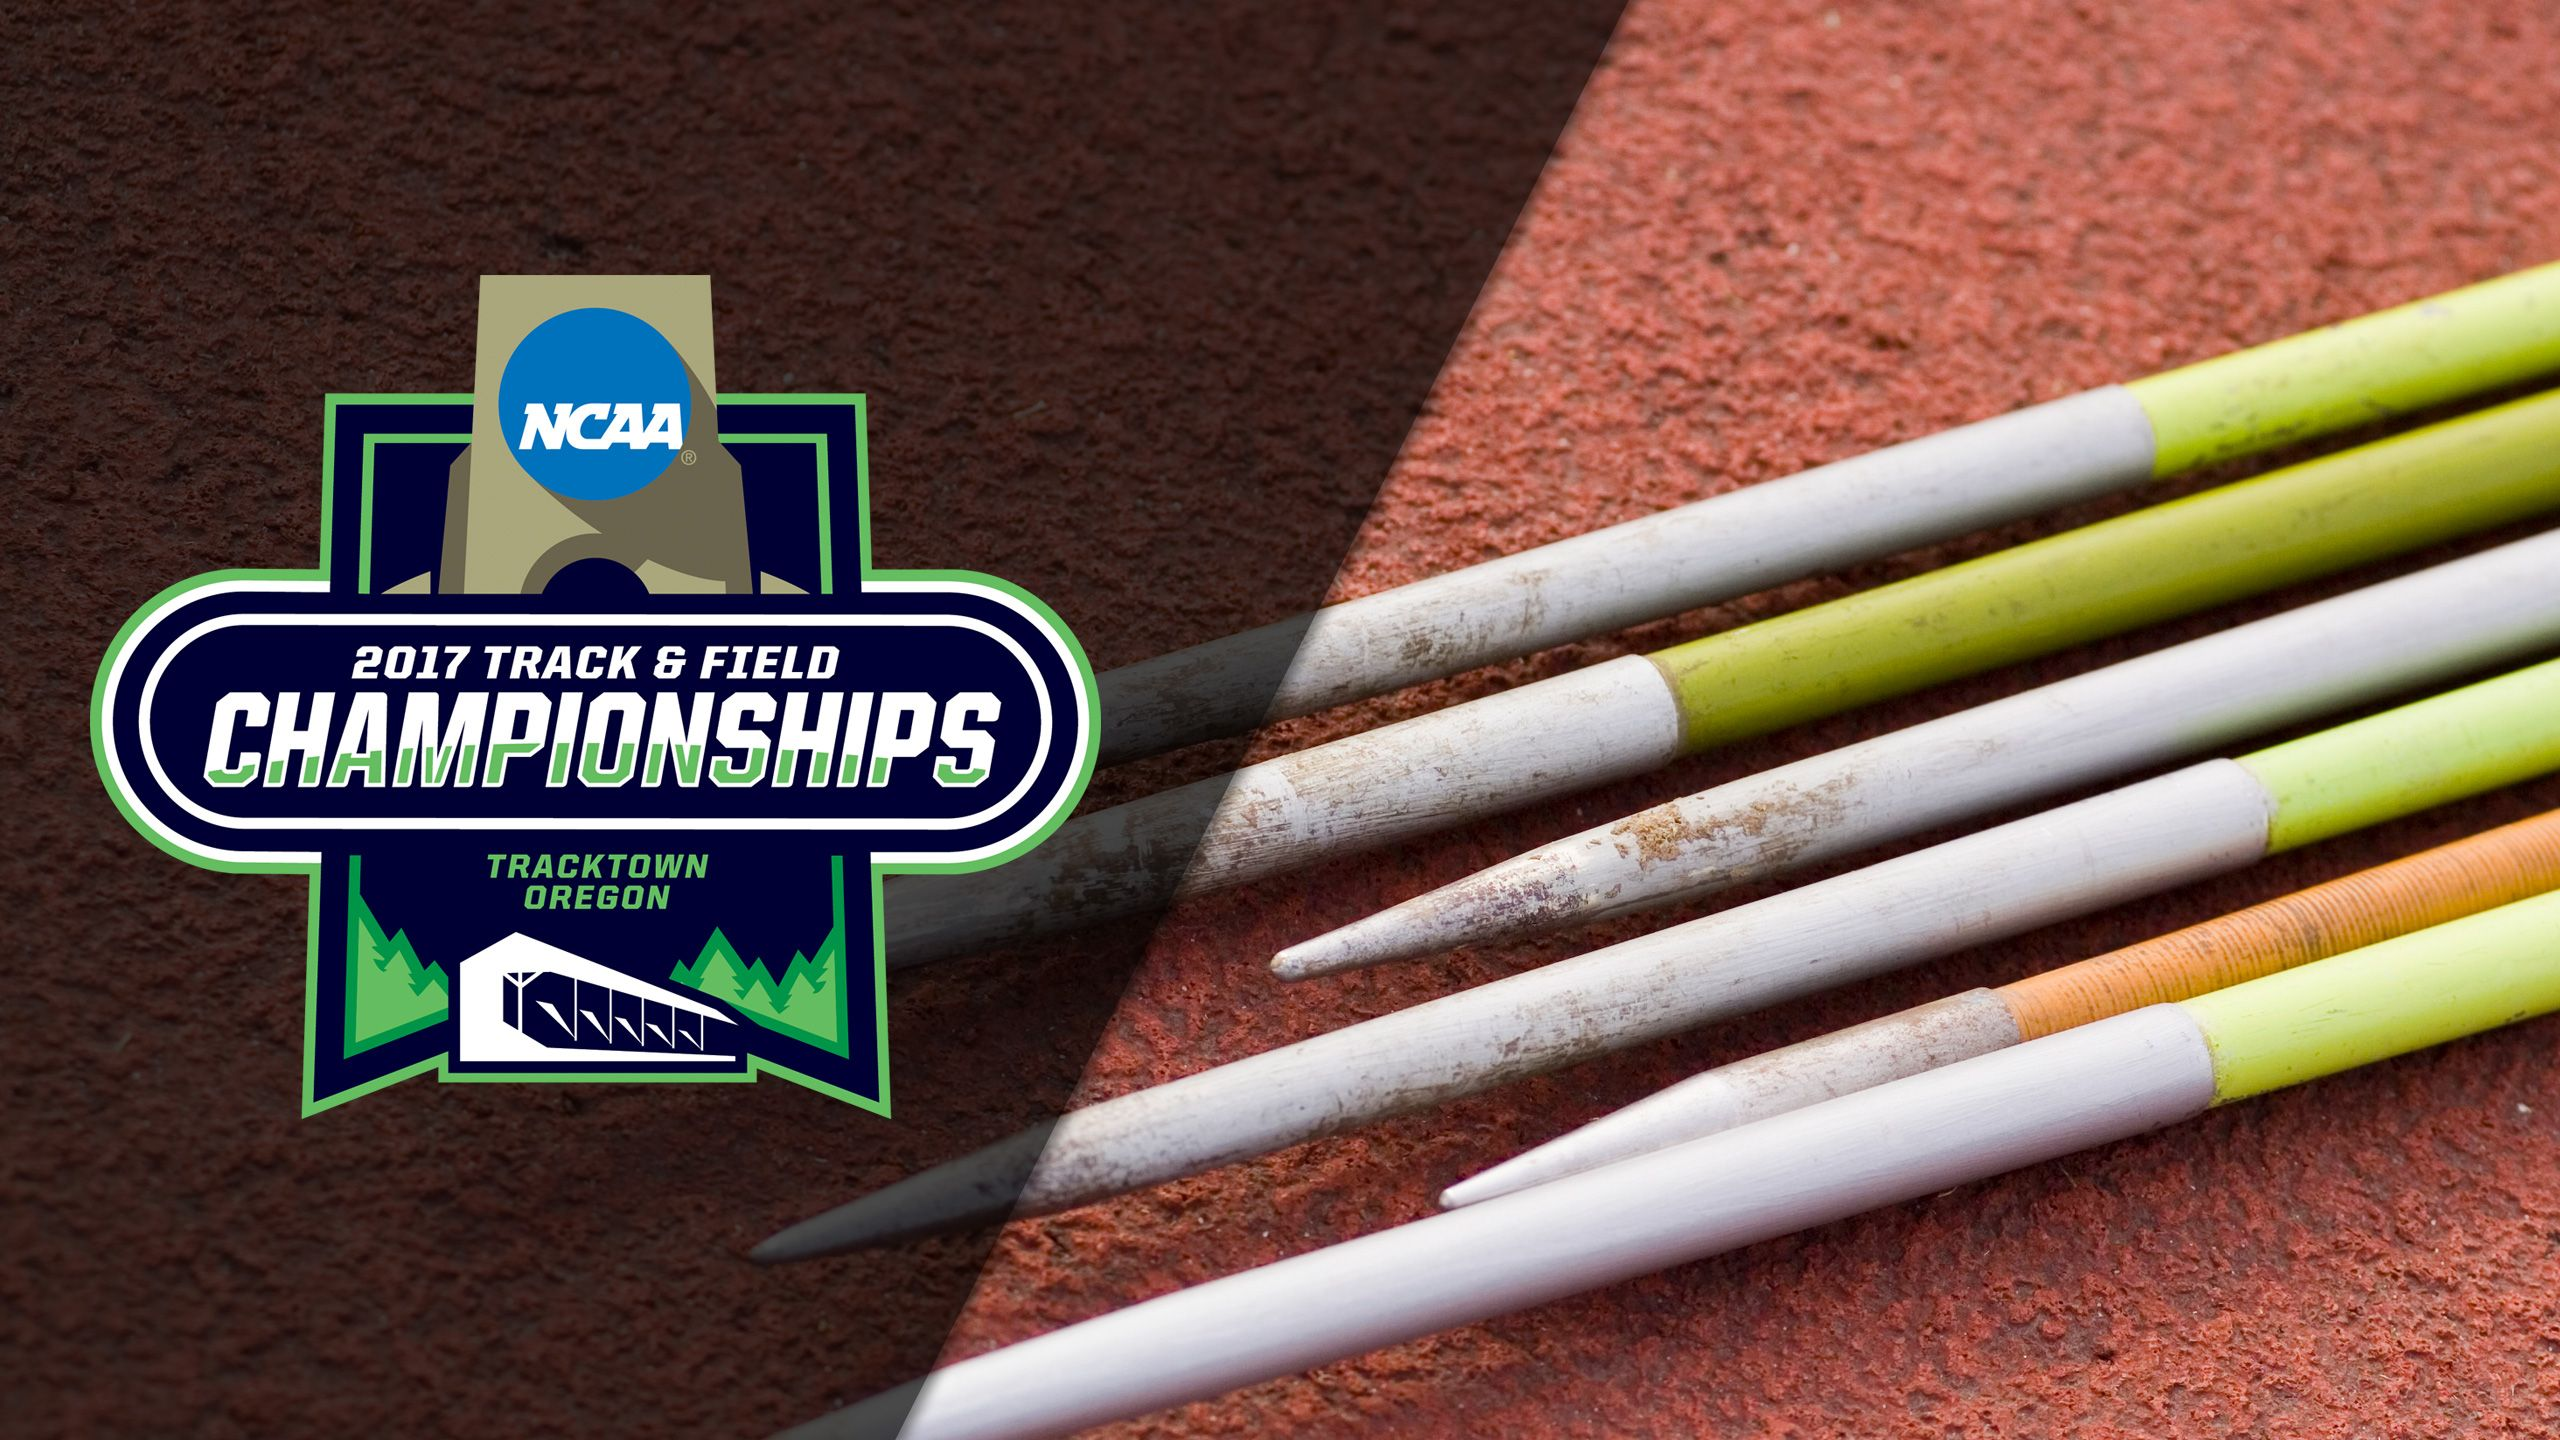 NCAA Track & Field Outdoor Championships - Heptathlon: Long Jump (Flight 2); Javelin Throw